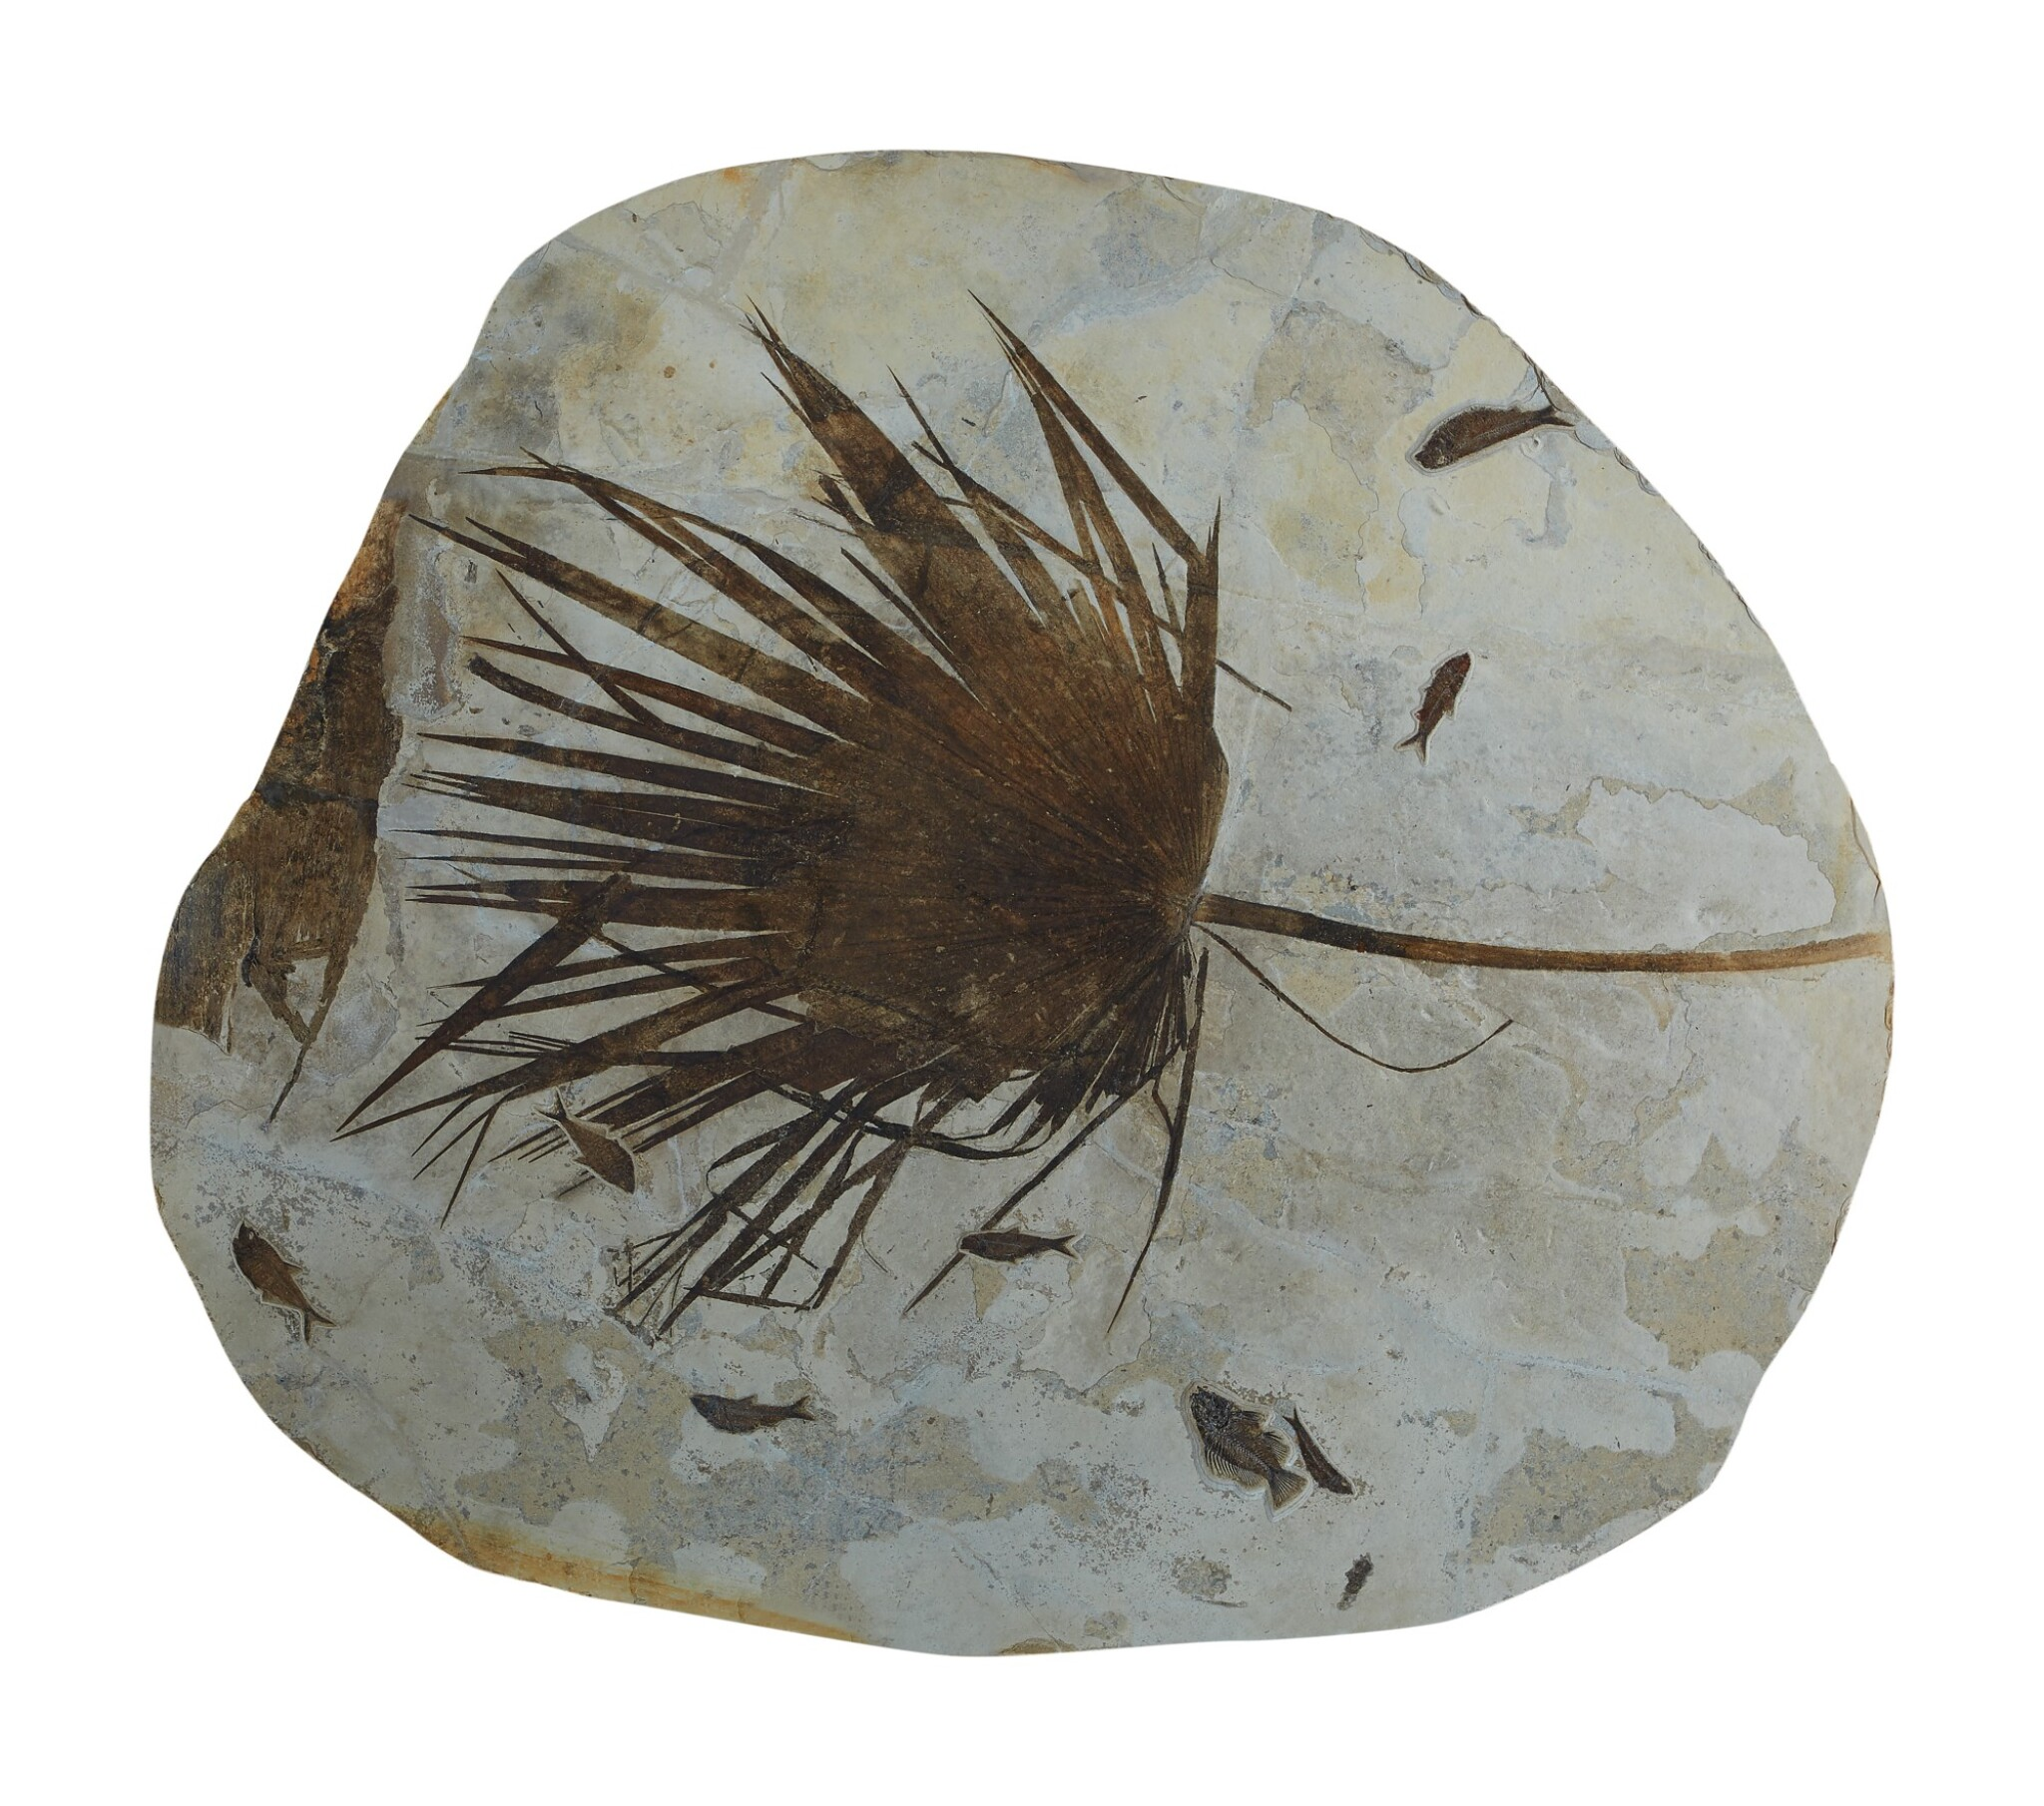 A FOSSIL PALM FROND WITH FISH